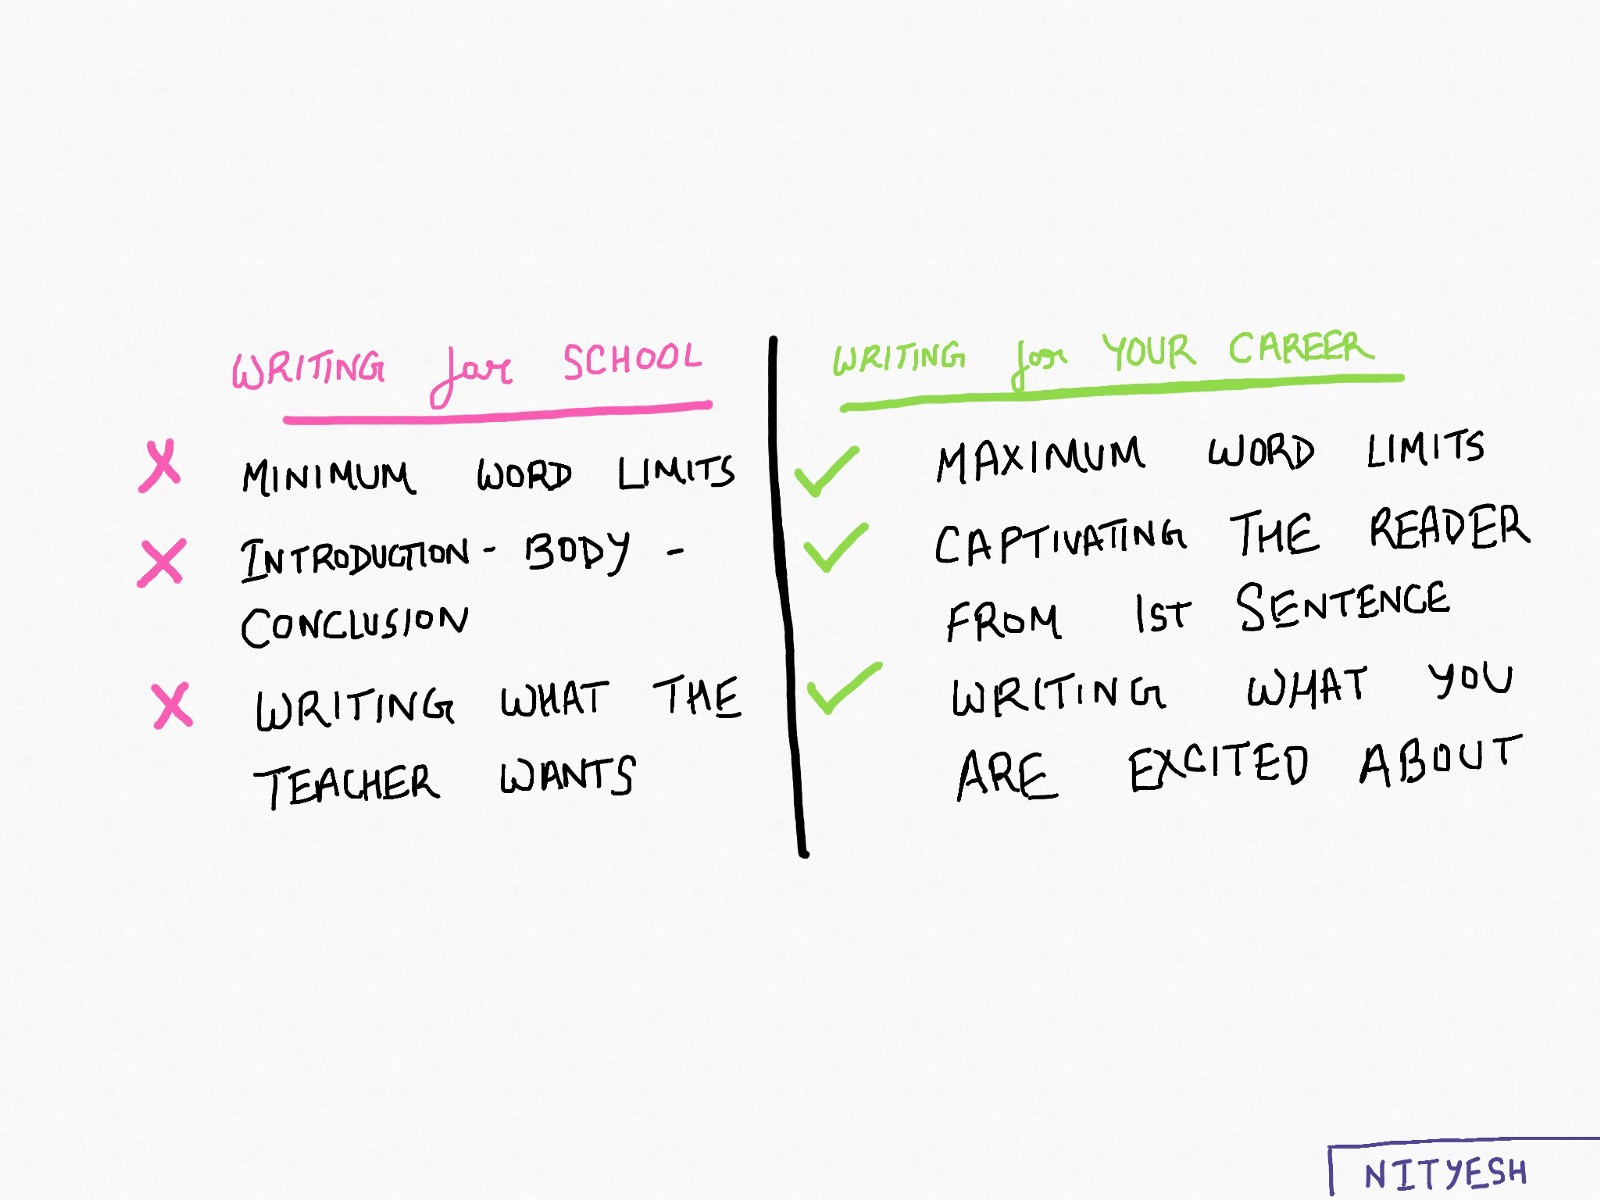 Checklist that shows the difference between writing for school and writing for your career